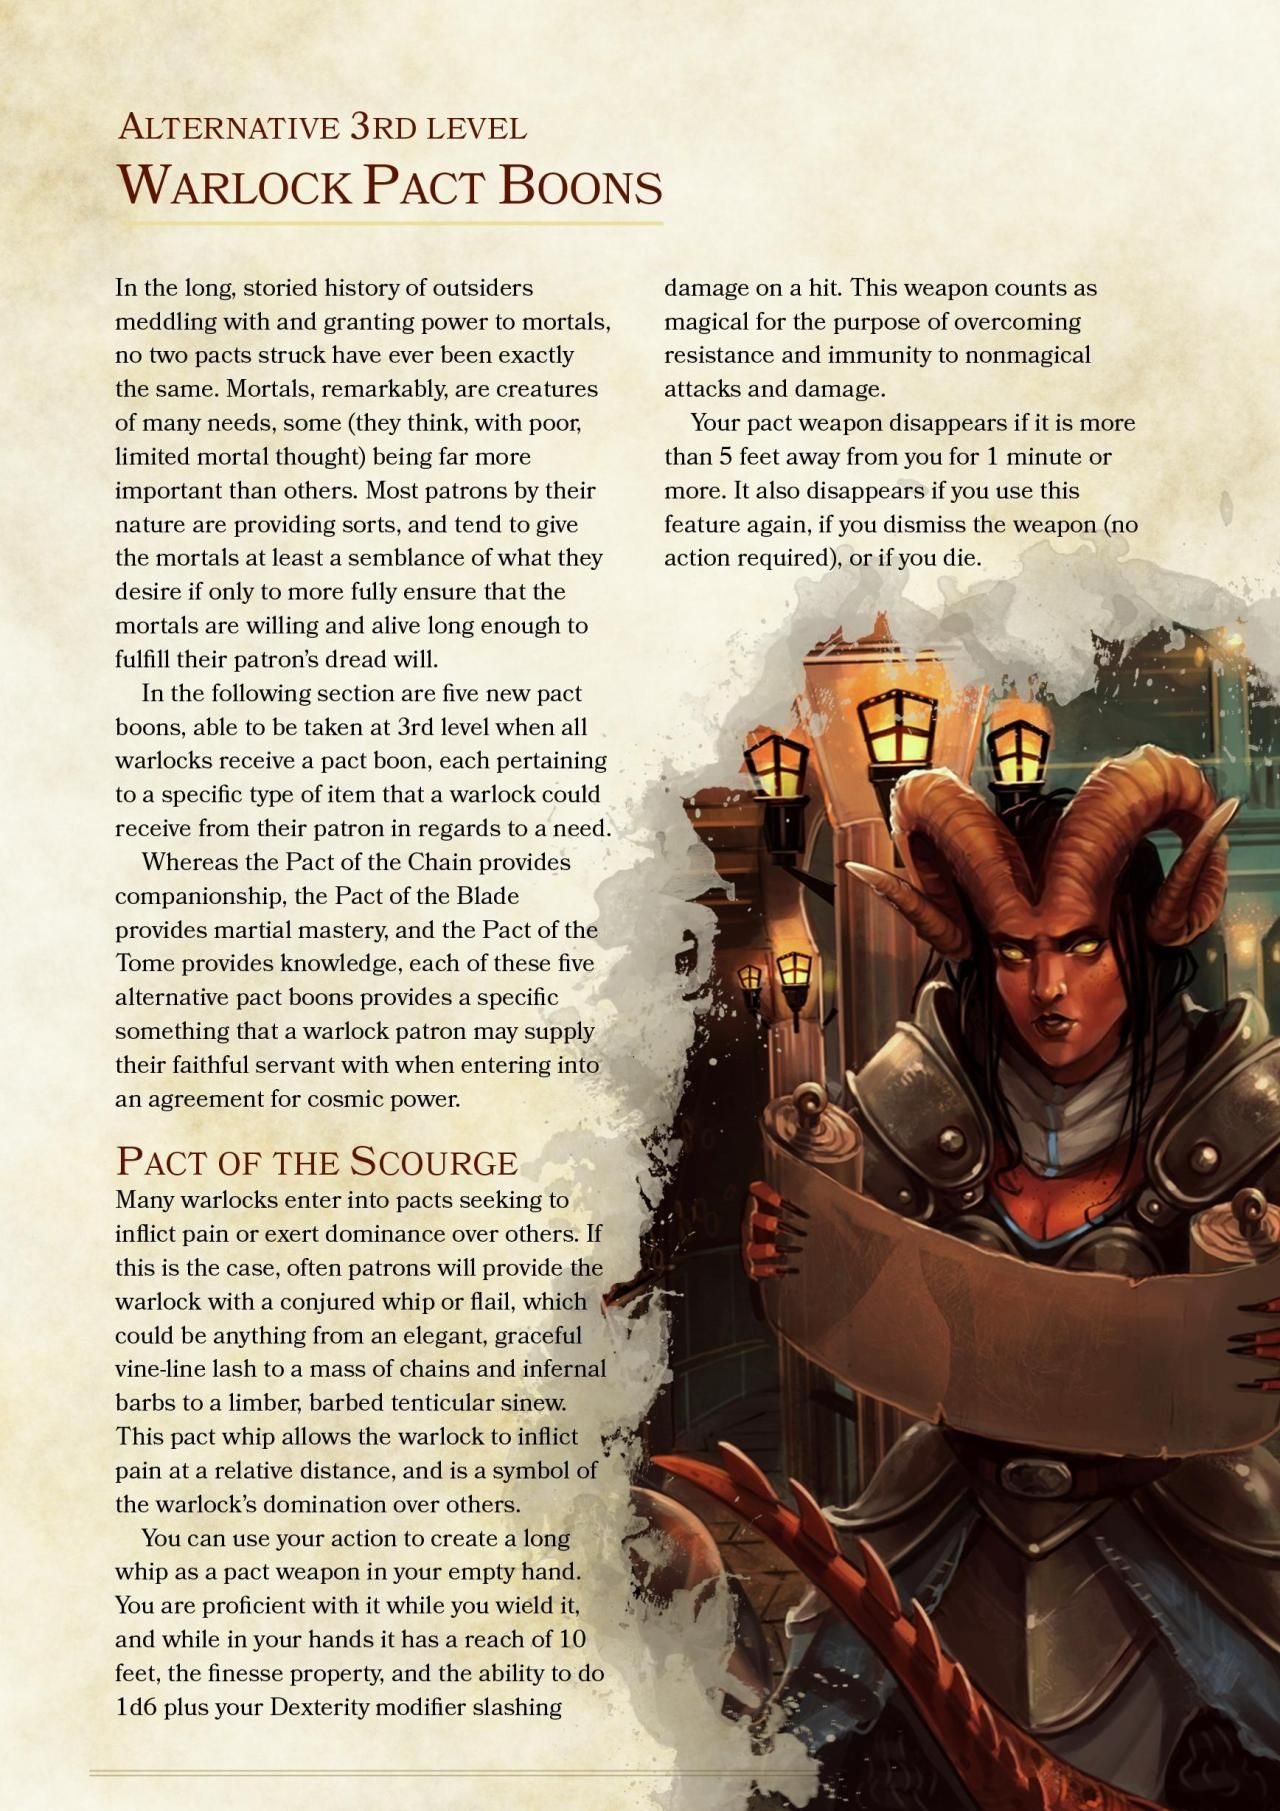 DnD 5e Homebrew — Warlock Pact Boons and Invocations by